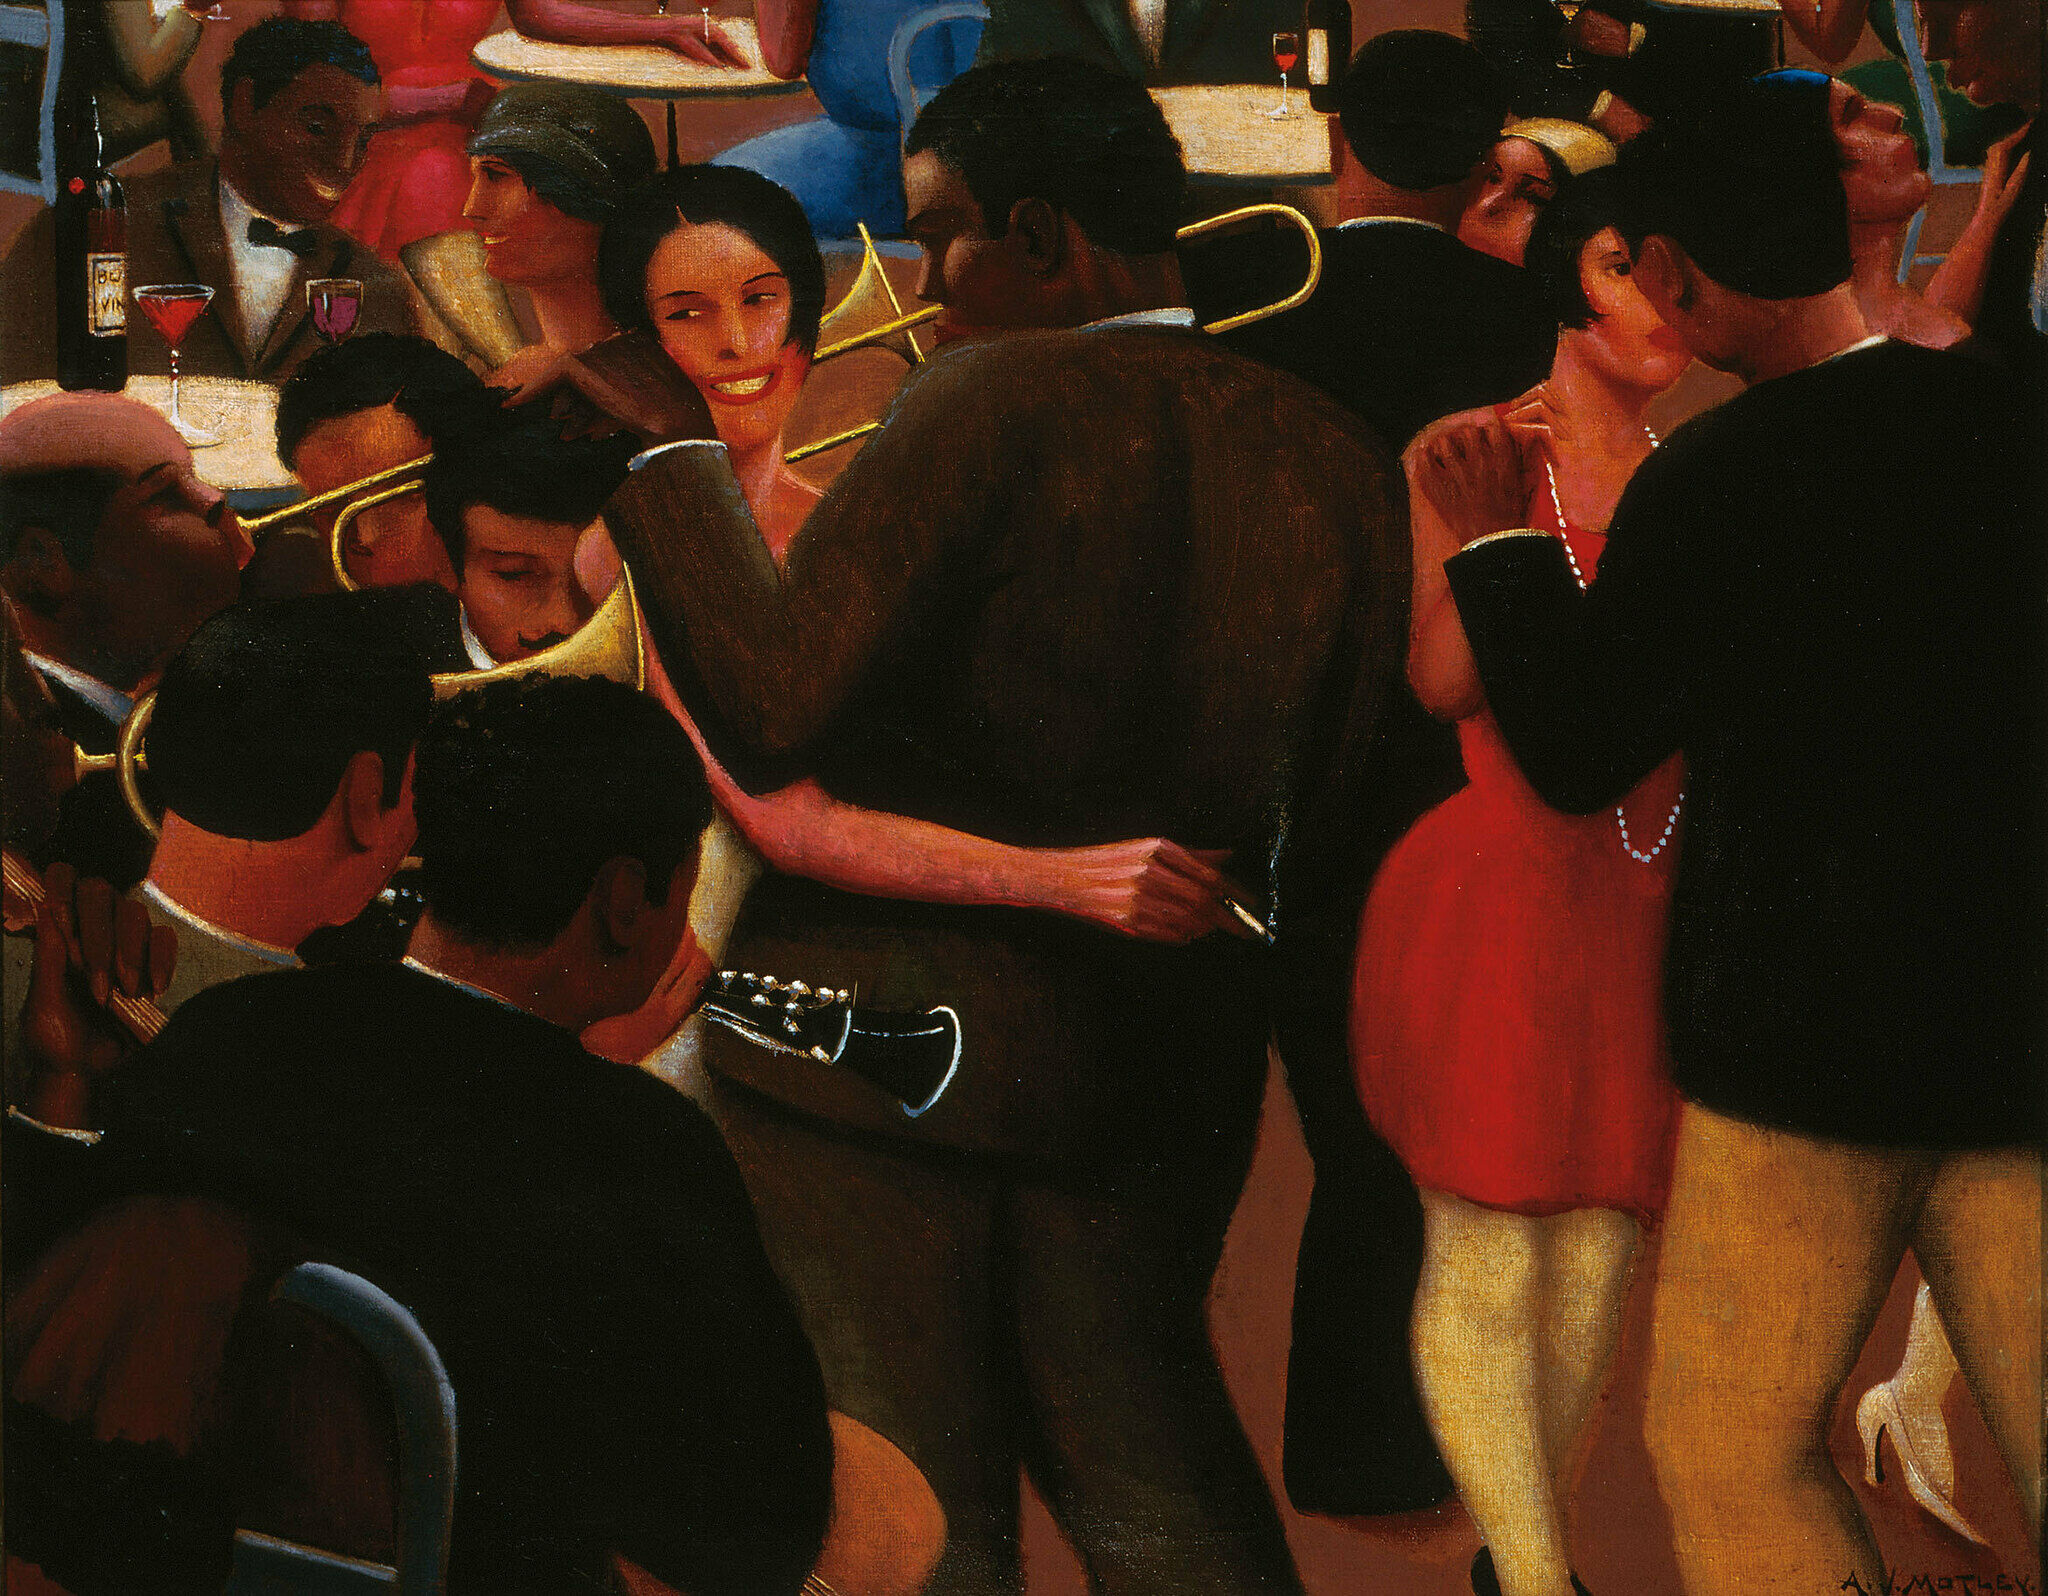 A painting by Archibald Motley. Men and woman dance in a tightly packed crowd.